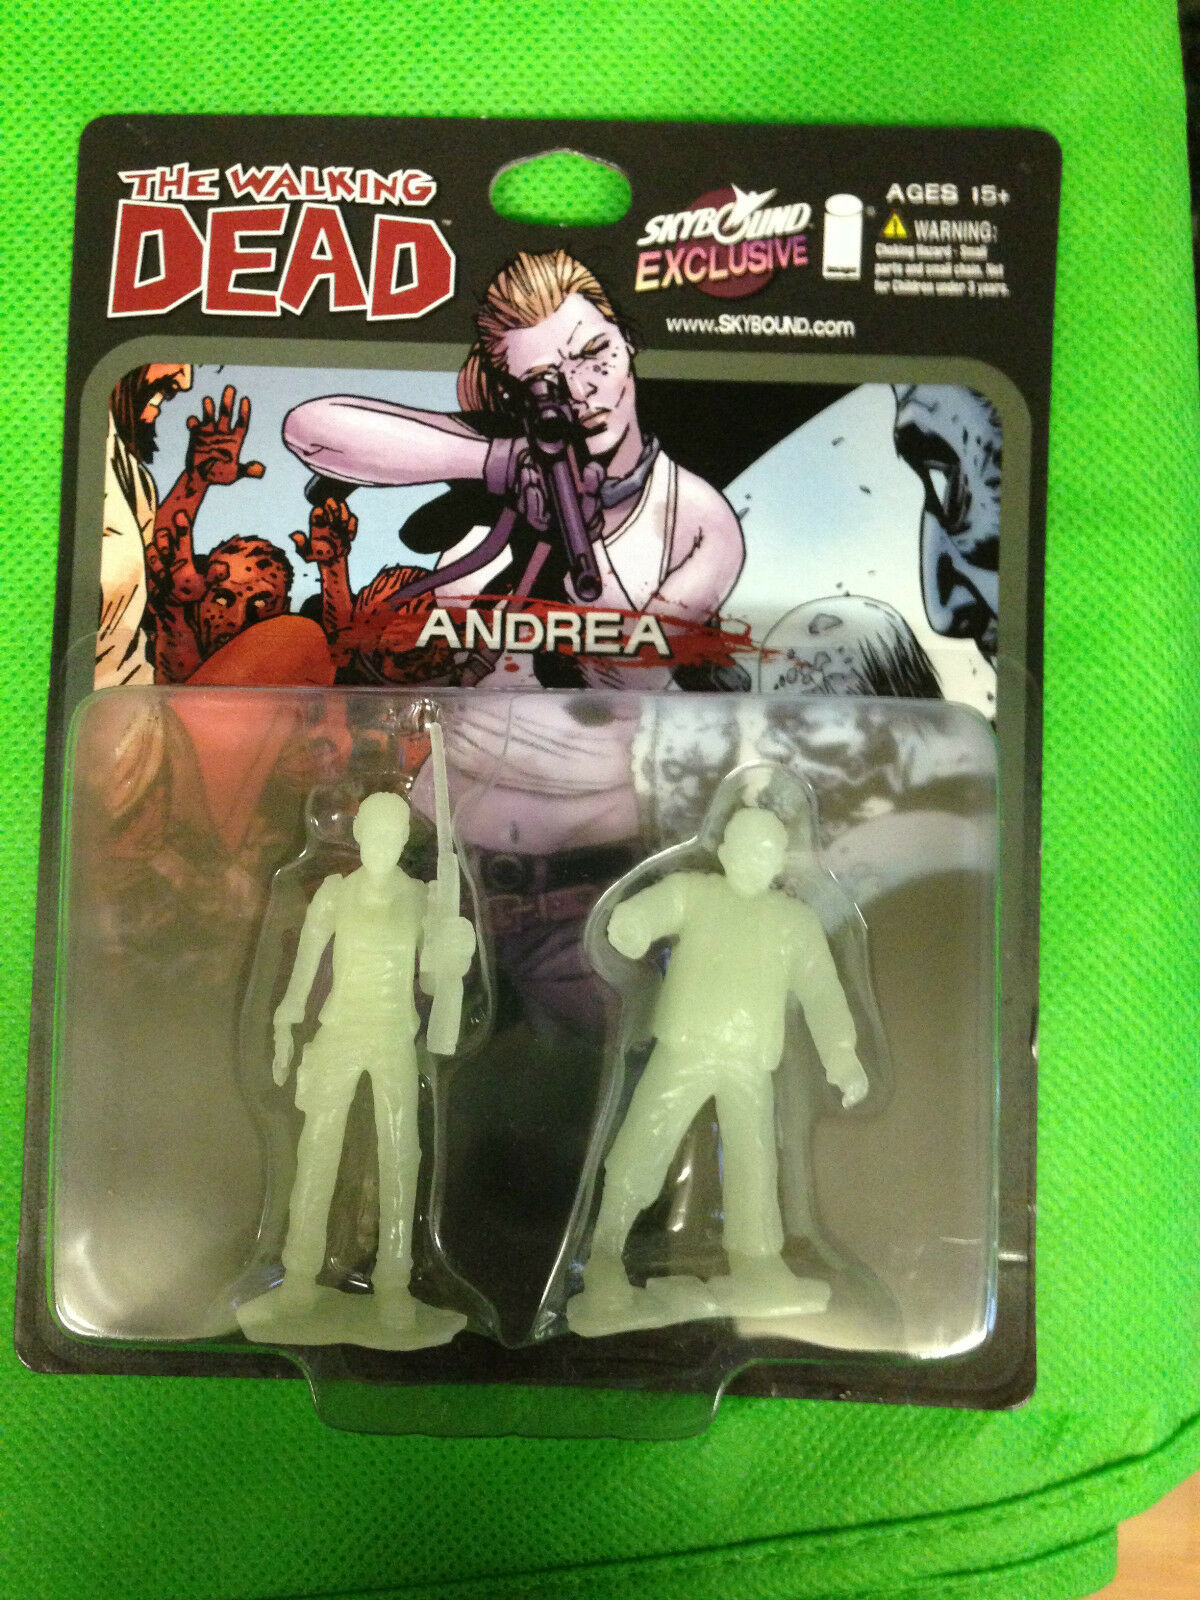 SDCC 2014 The Walking Dead Skybound Andrea Glow in the Dark GID 500 A  Rare